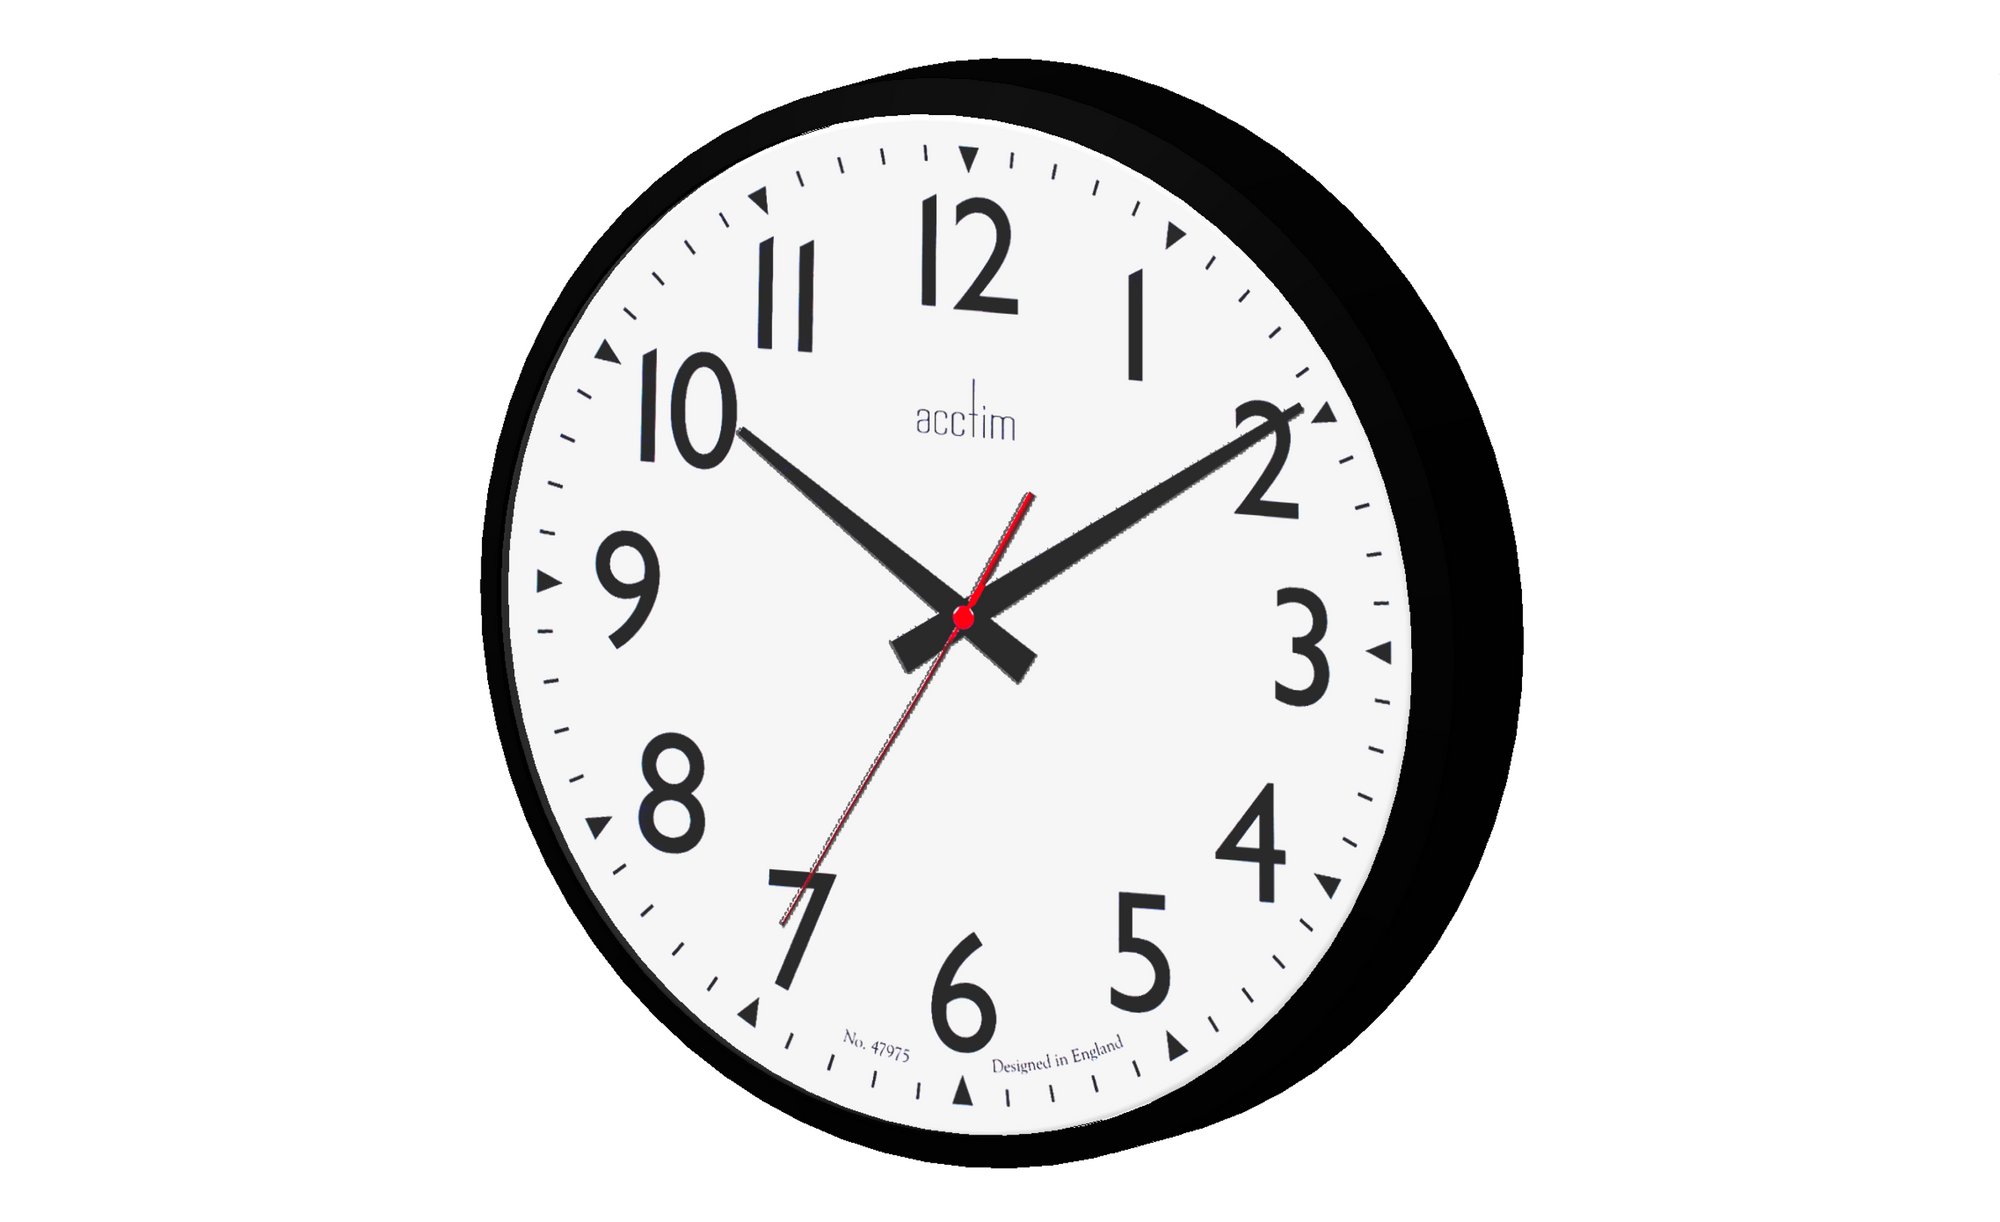 3D image showing analogue wall mounted clock.